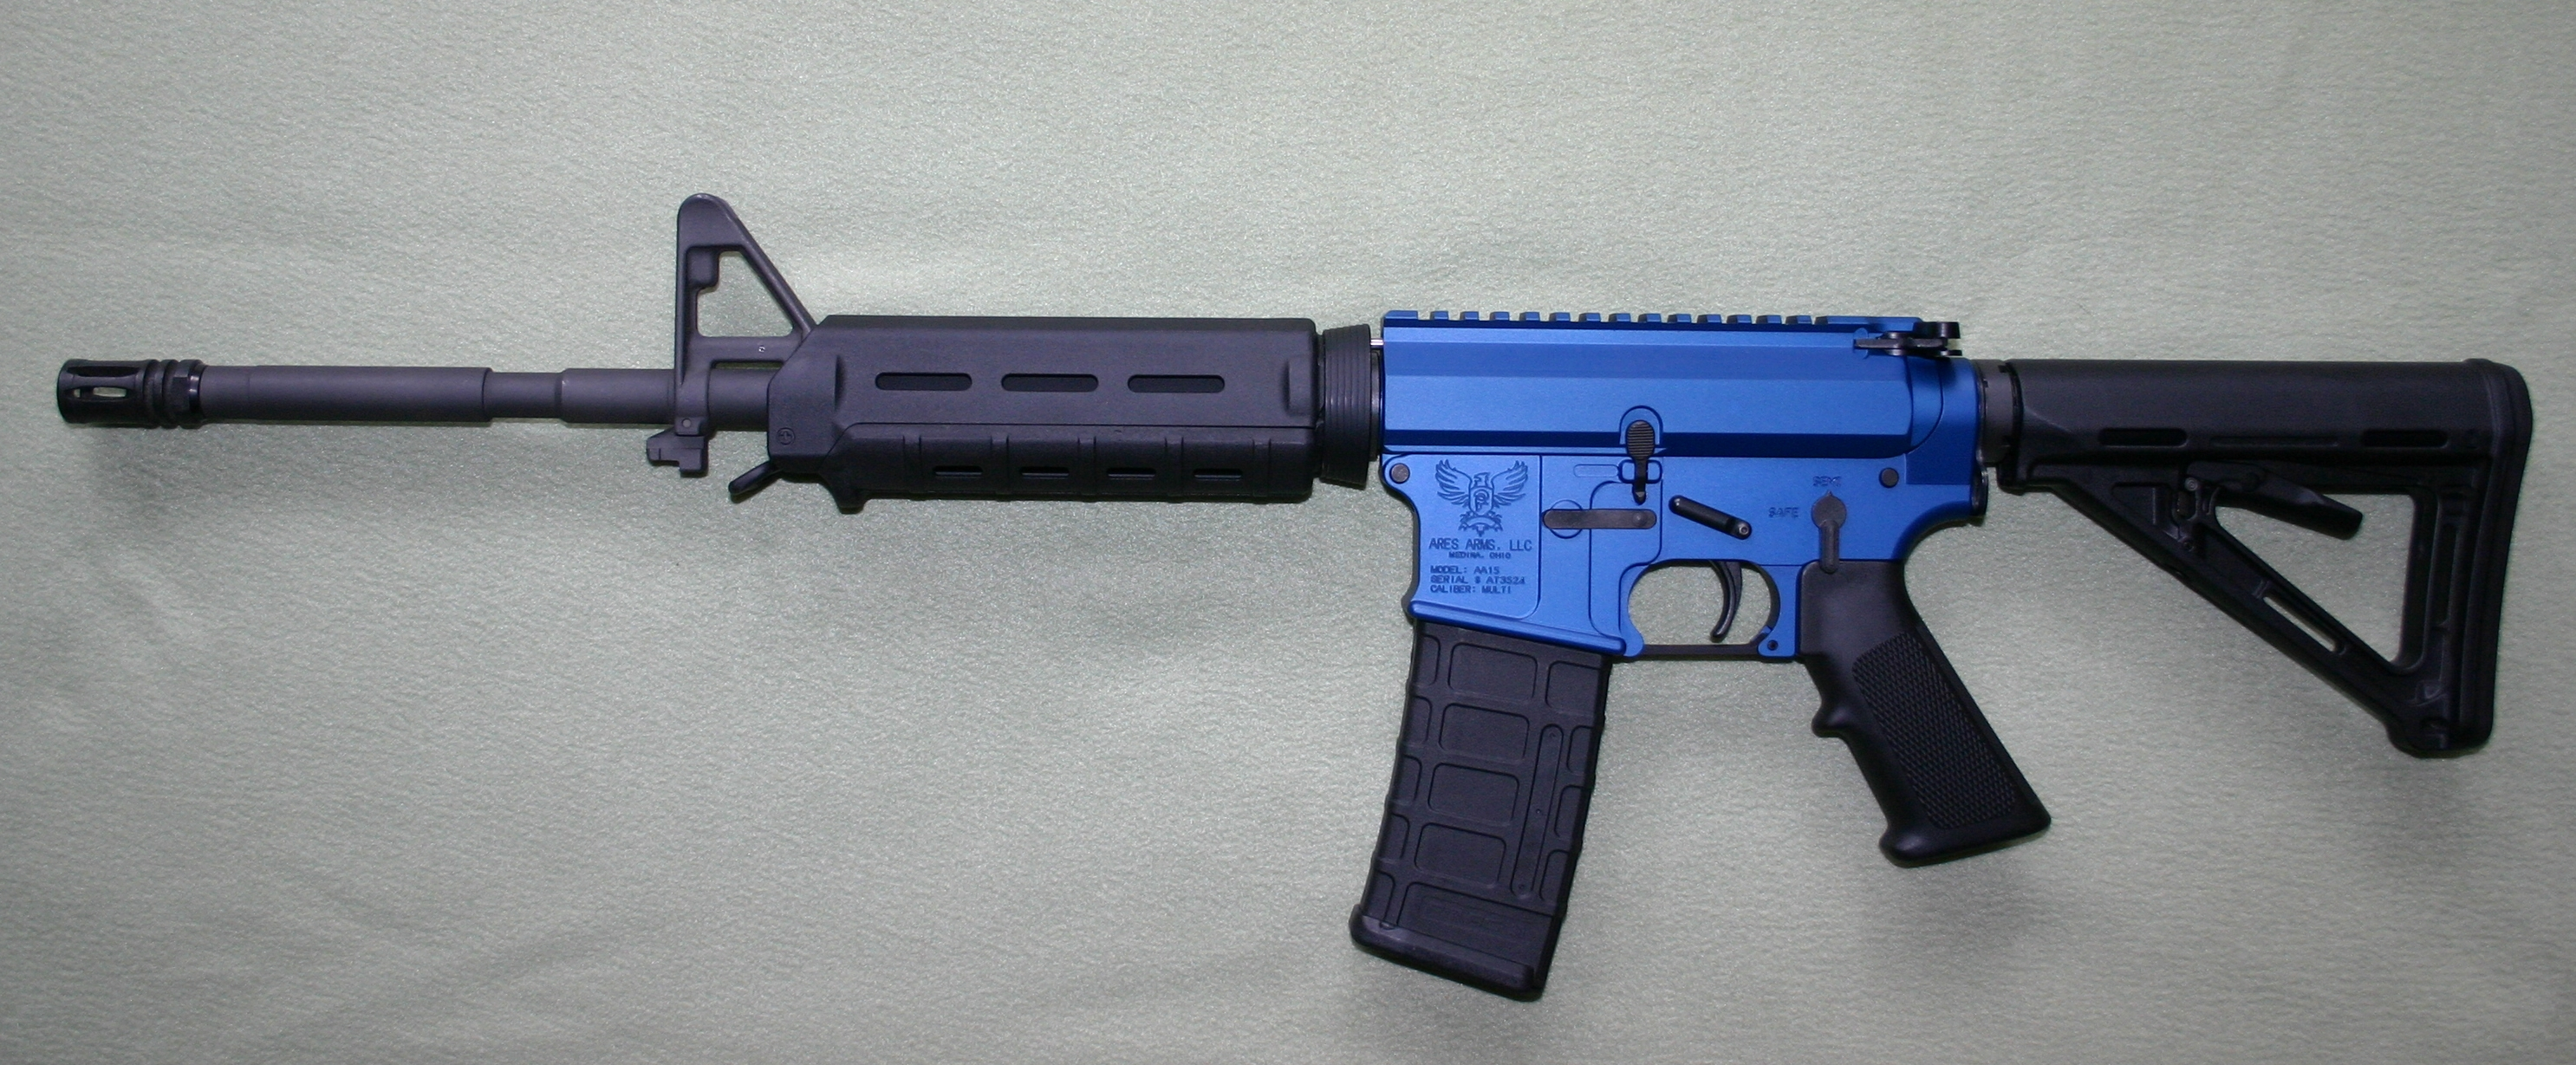 Custom Colored Rifles : Ares Arms, Excellence in Execution